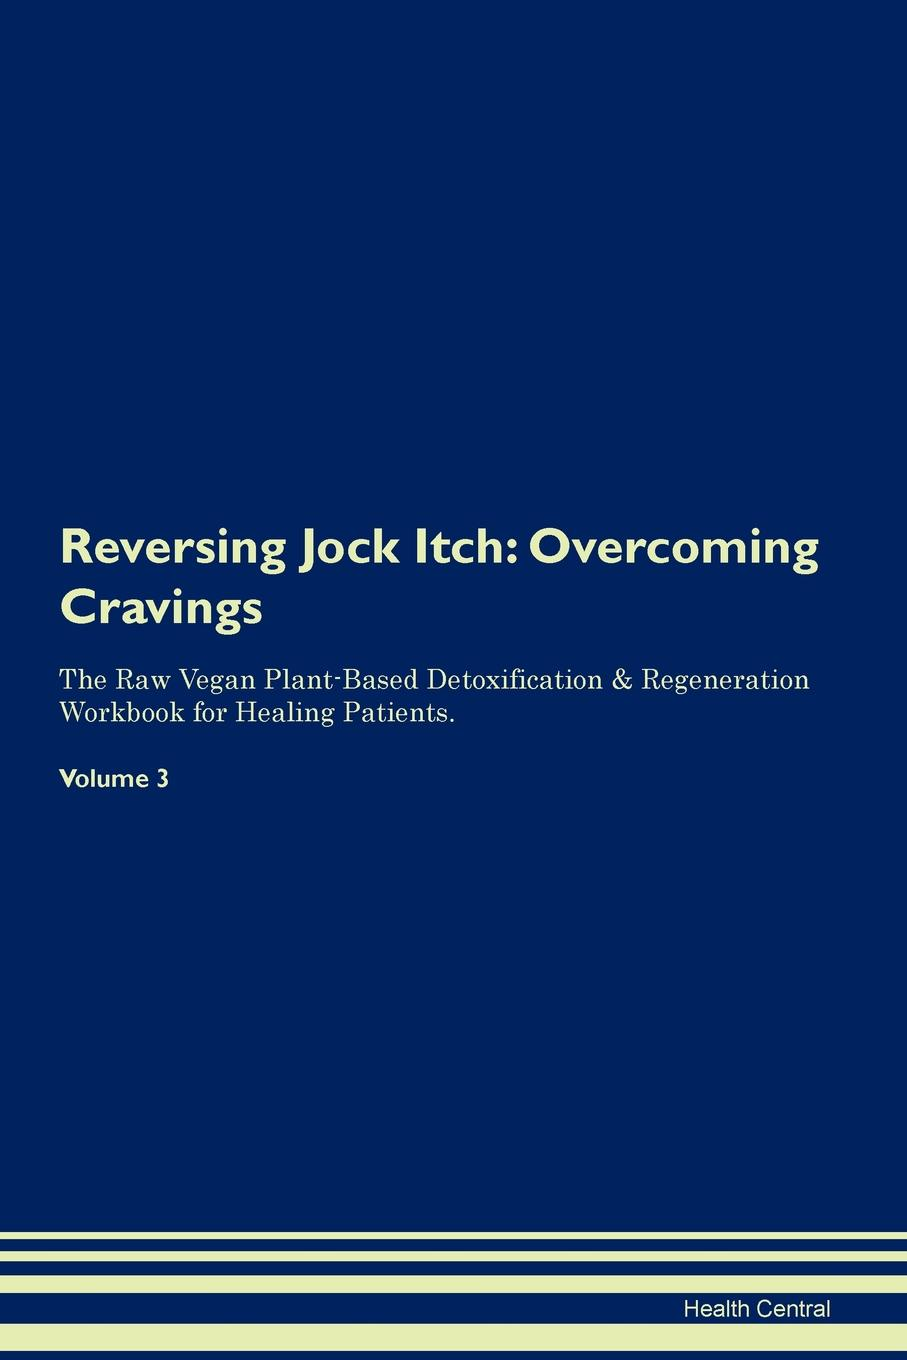 Reversing Jock Itch. Overcoming Cravings The Raw Vegan Plant-Based Detoxification & Regeneration Workbook for Healing Patients. Volume 3